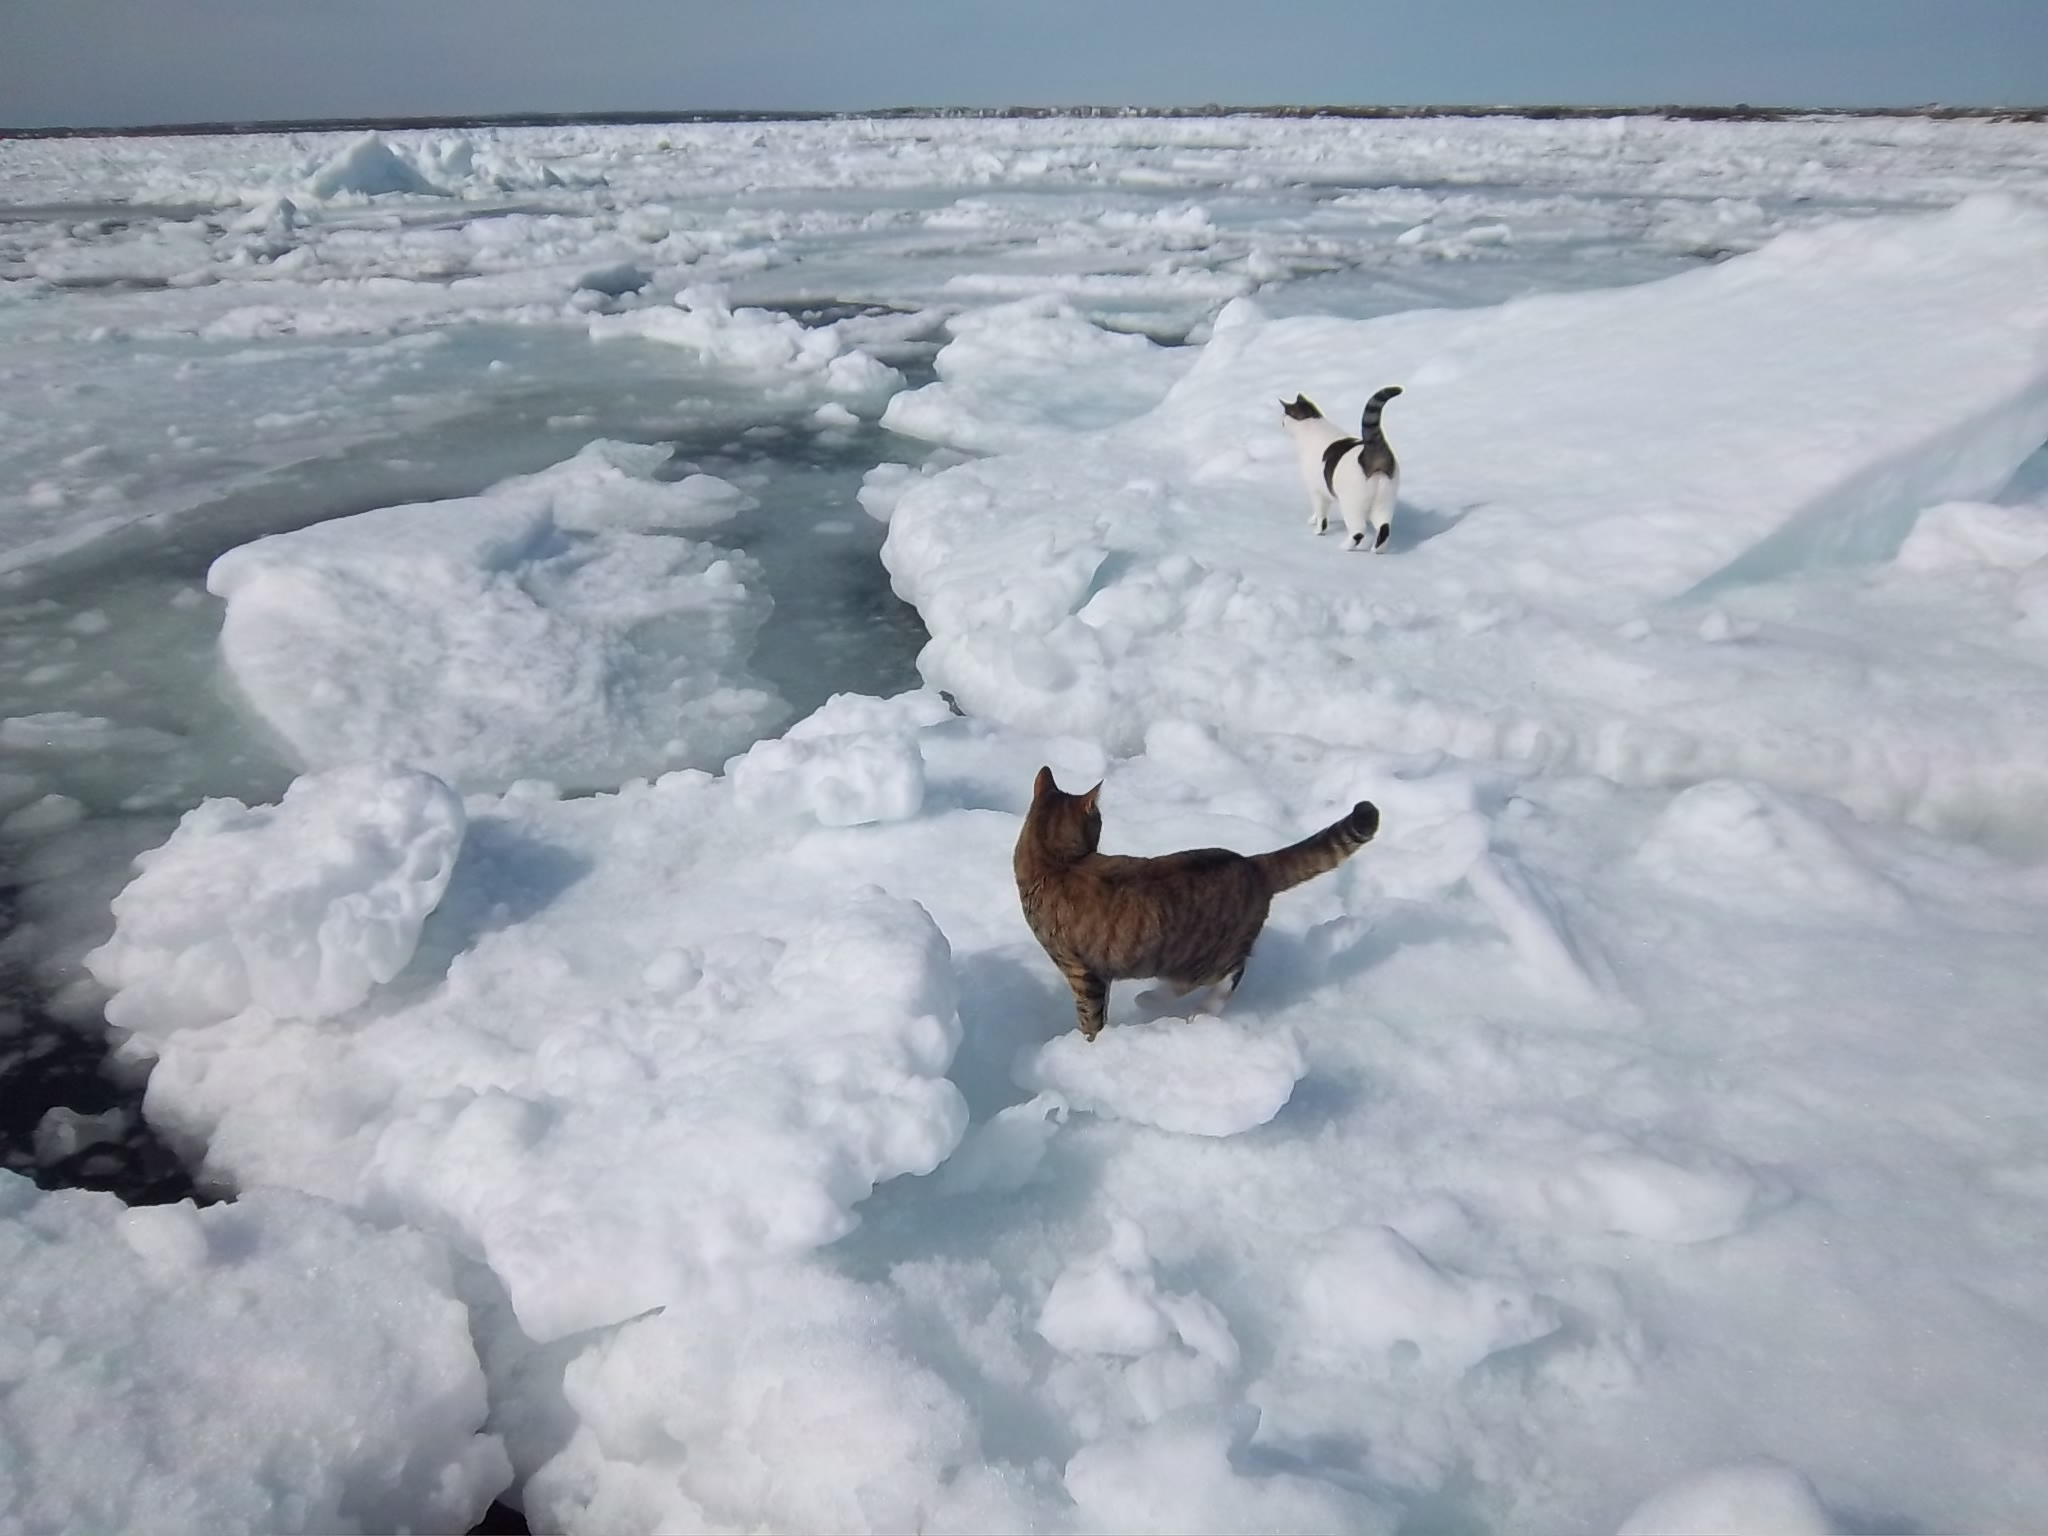 Cats on Ice: Exploring Spring Thaw in Iceberg Alley